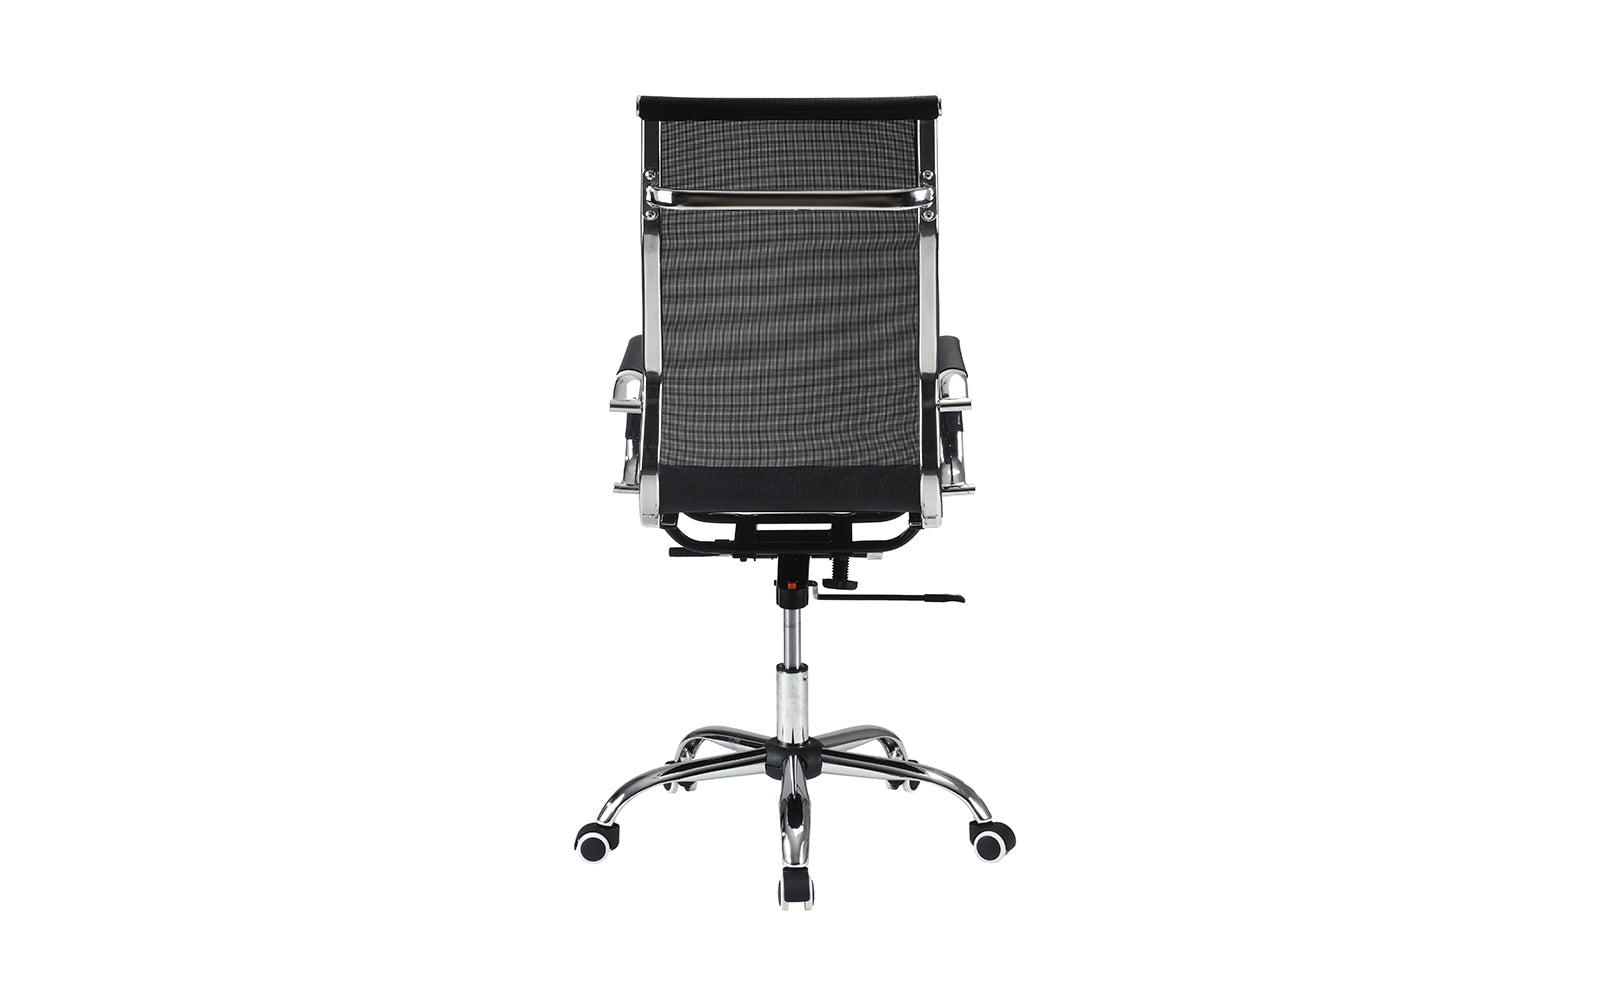 Drew Modern Mesh Conference Office Chair  sc 1 st  Sofamania & Drew Modern Mesh Conference Office Chair | Sofamania.com